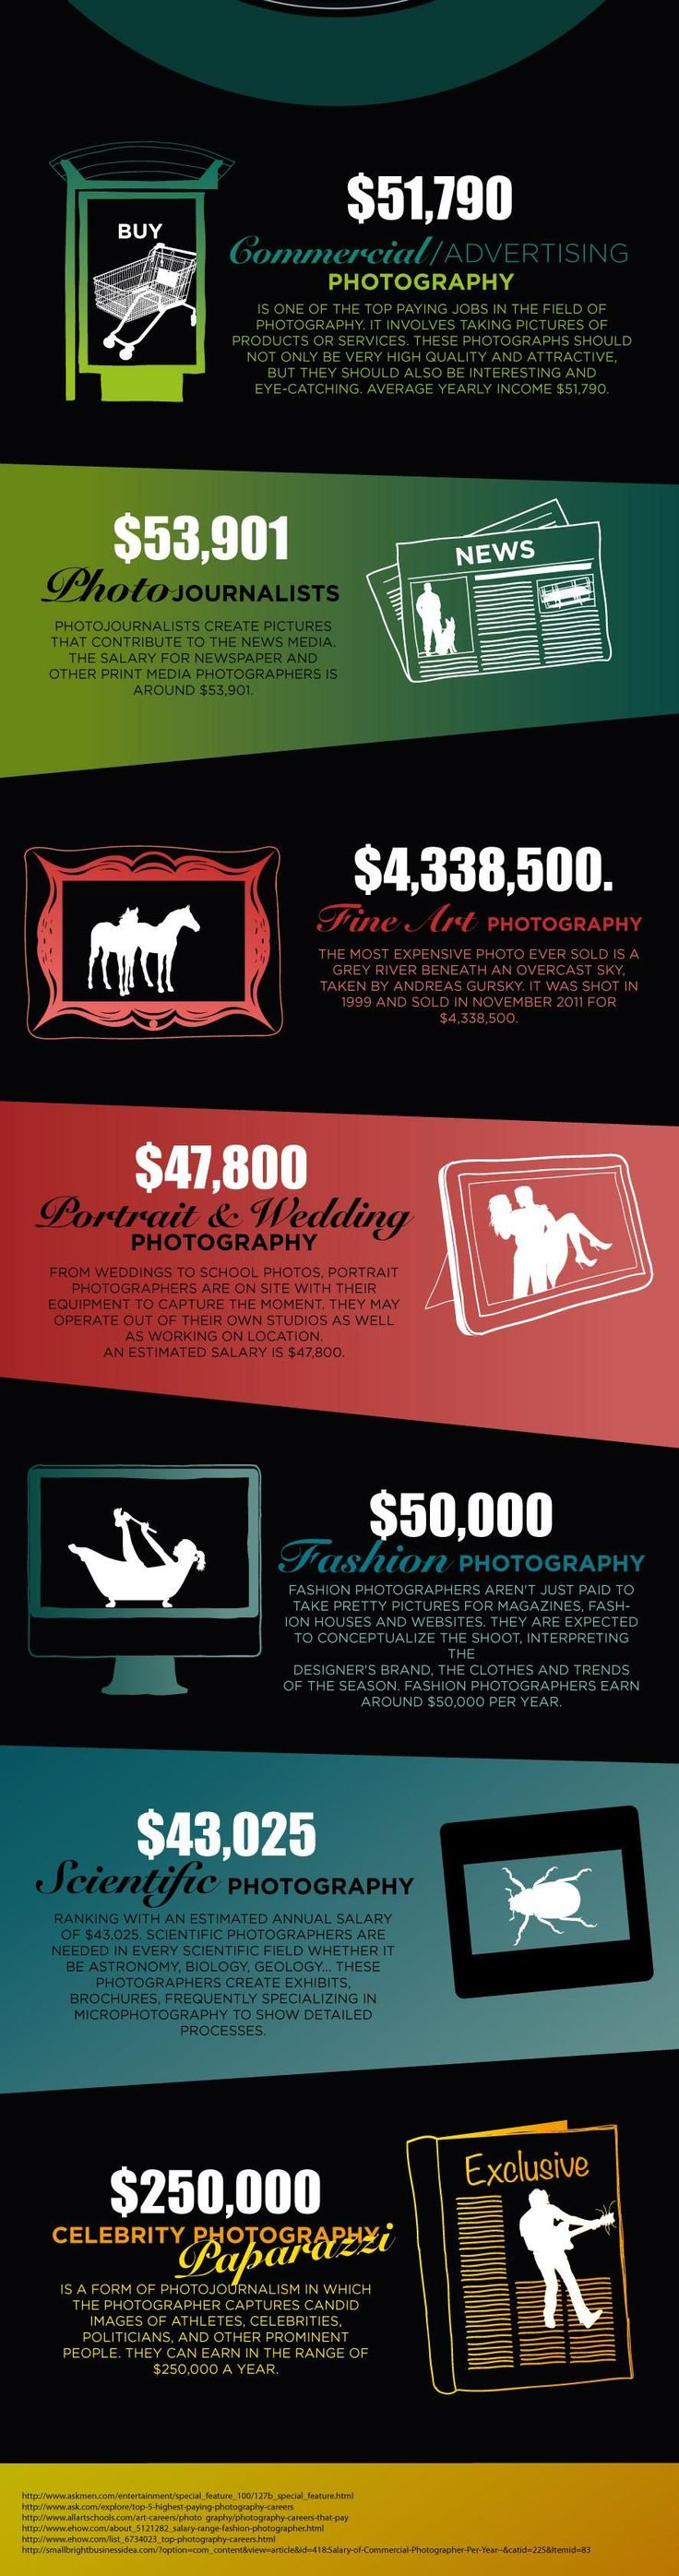 Top Paying Photography Jobs If you want to enjoy the Good Life: making money in the comfort of your own home with your photography, then this is for YOU… http://photographyjobs-net.blogspot.com?prod=CU8RFTq9